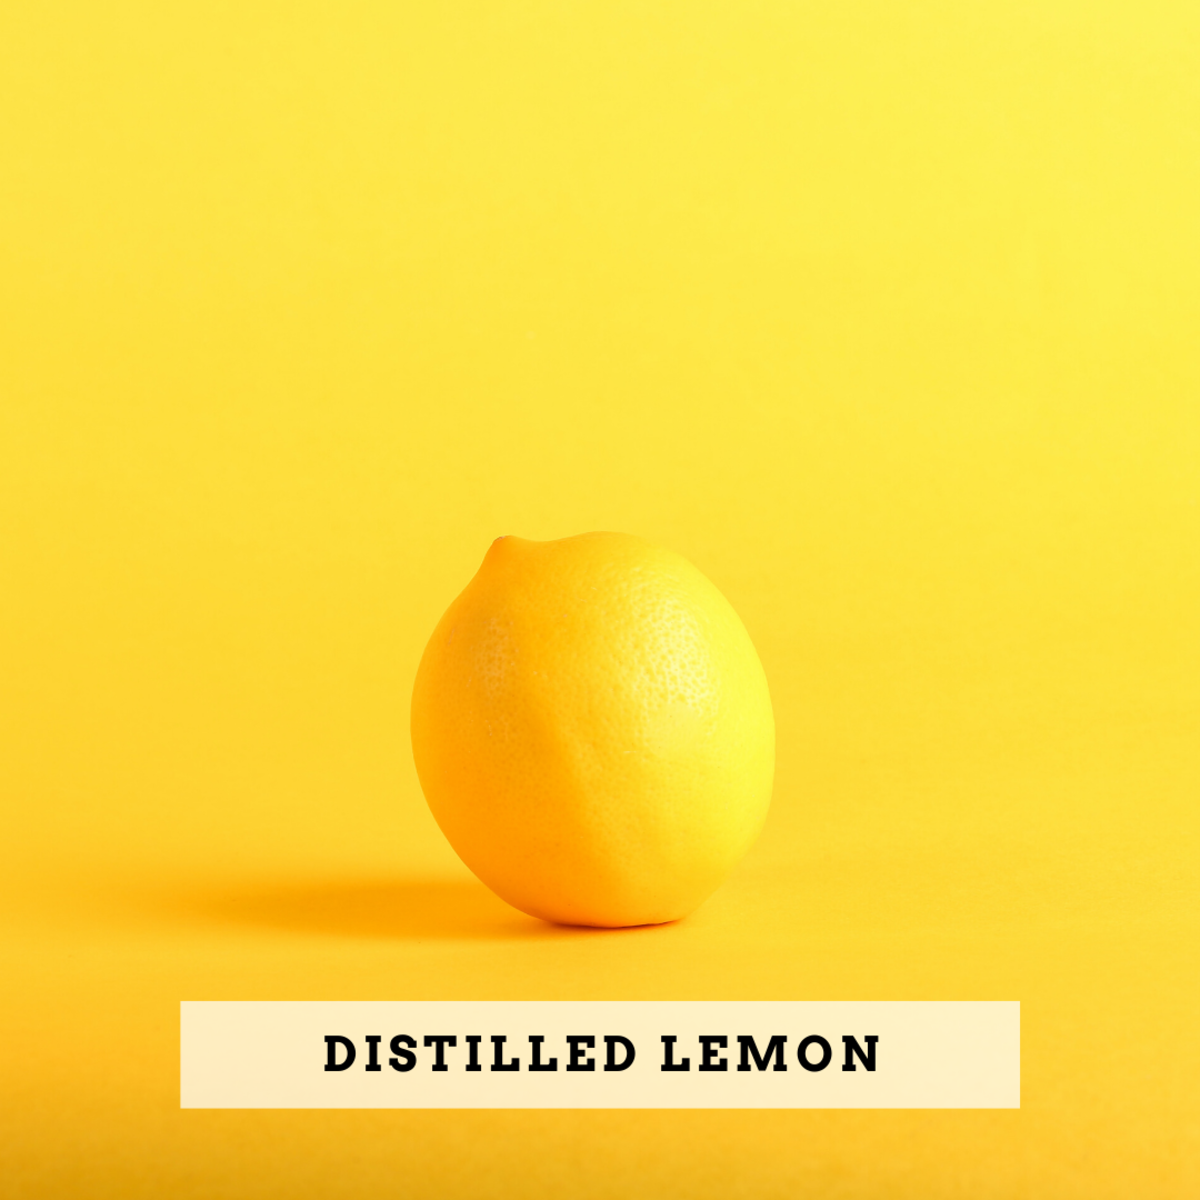 Distilled Lemon